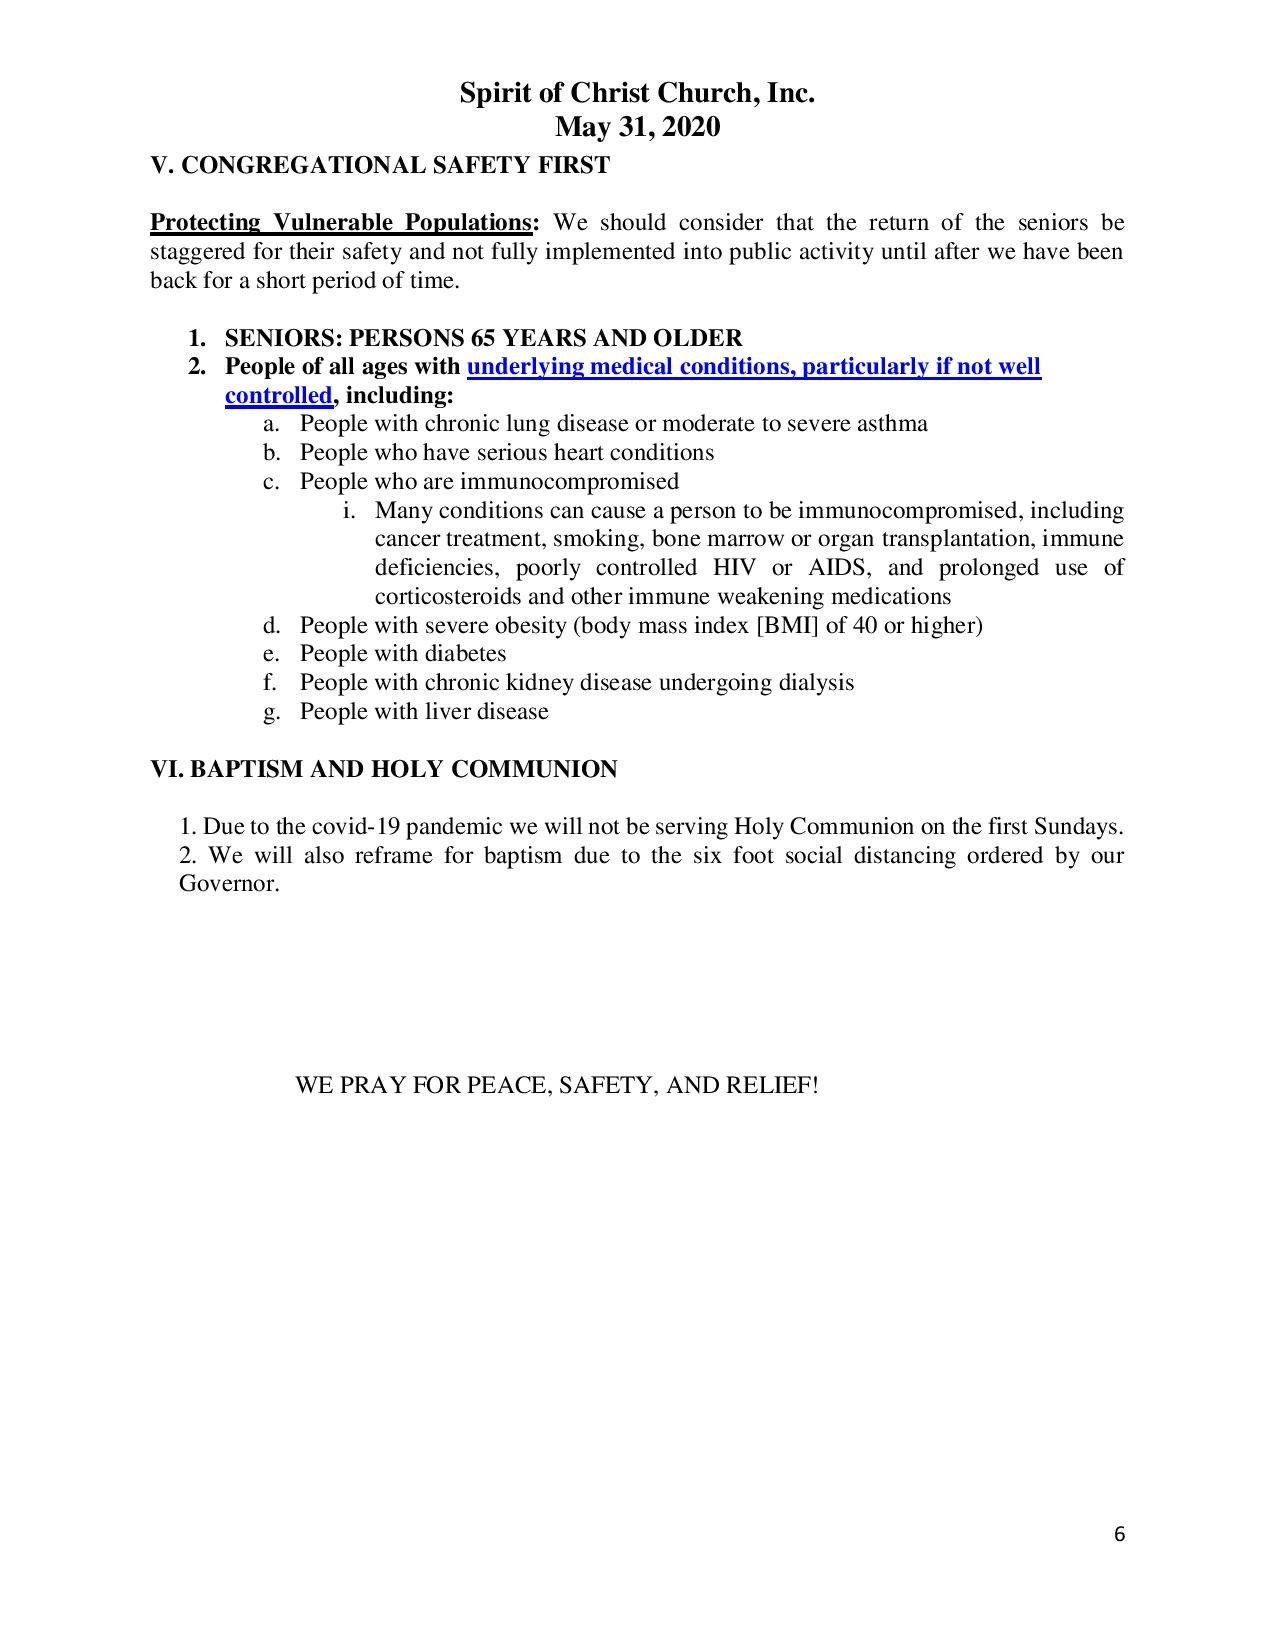 COVID-19_SAFELY REOPENING HOUSES OF WORSHIP GUIDELINE AND SUMMARY-page-006